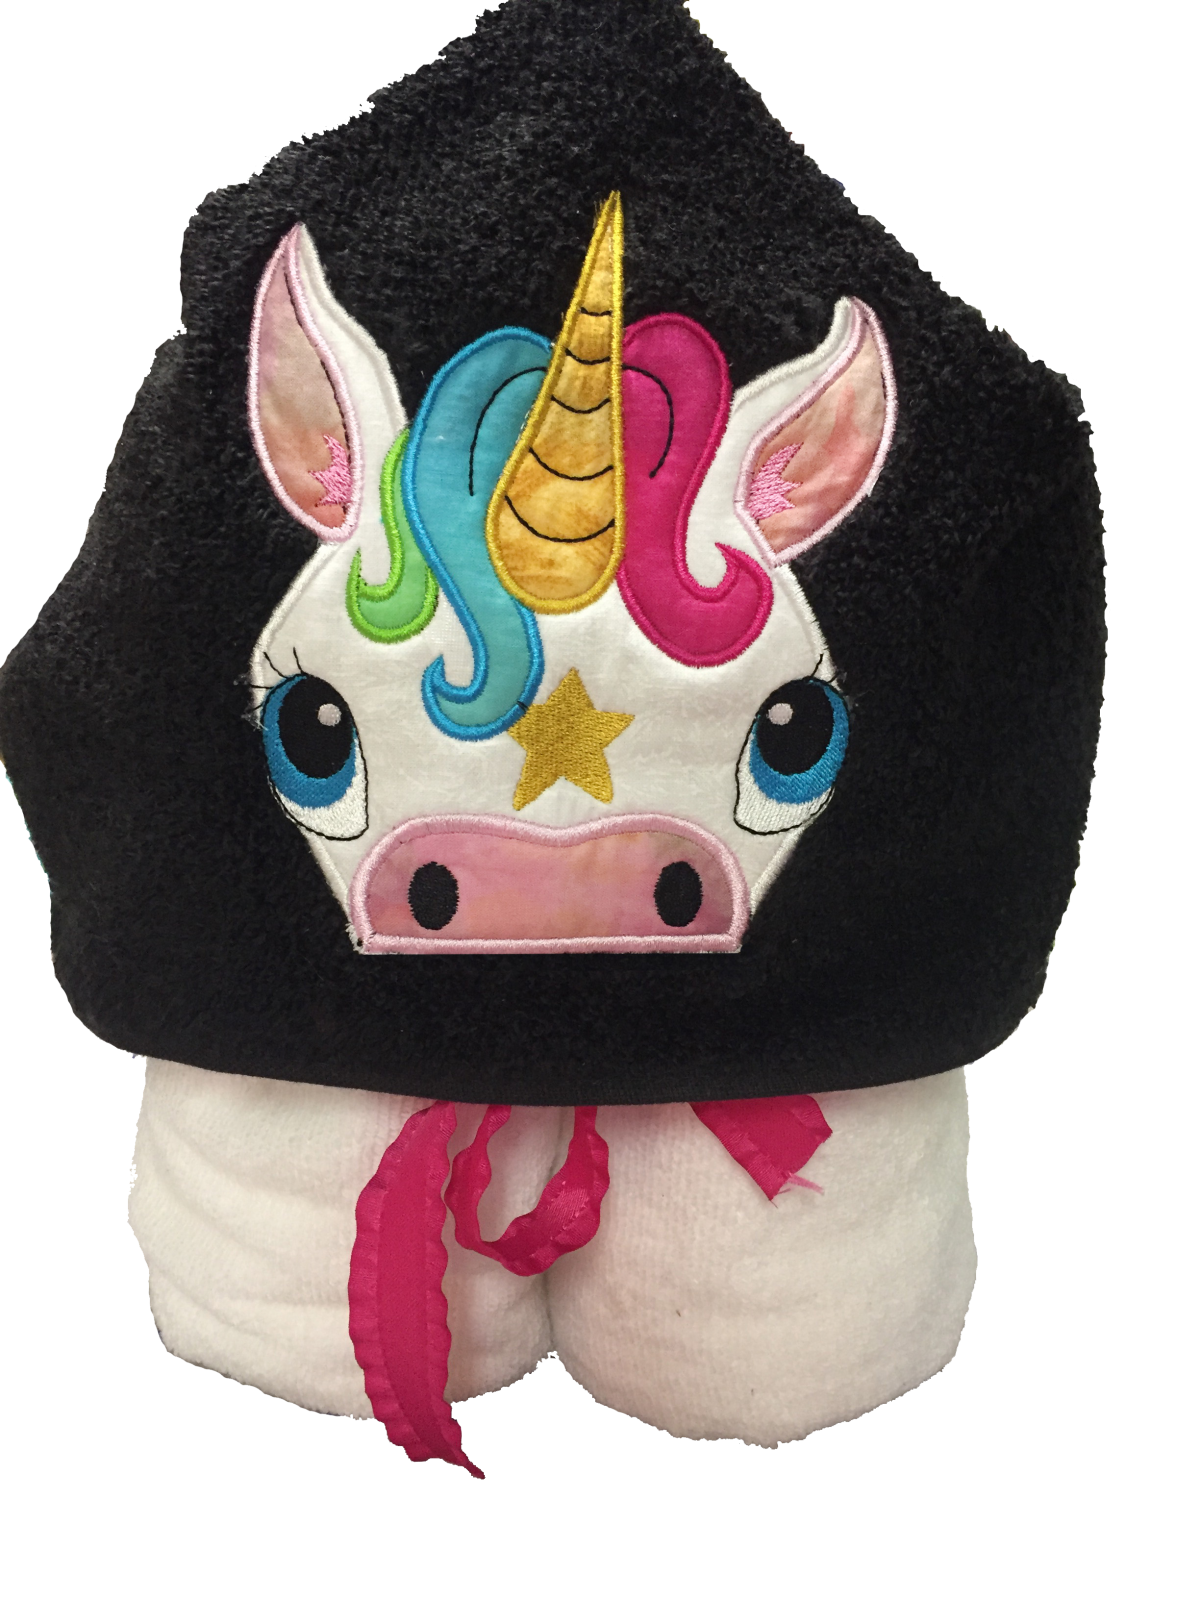 Unicorn Towel Hoodie project CD (GP-105-DDE)